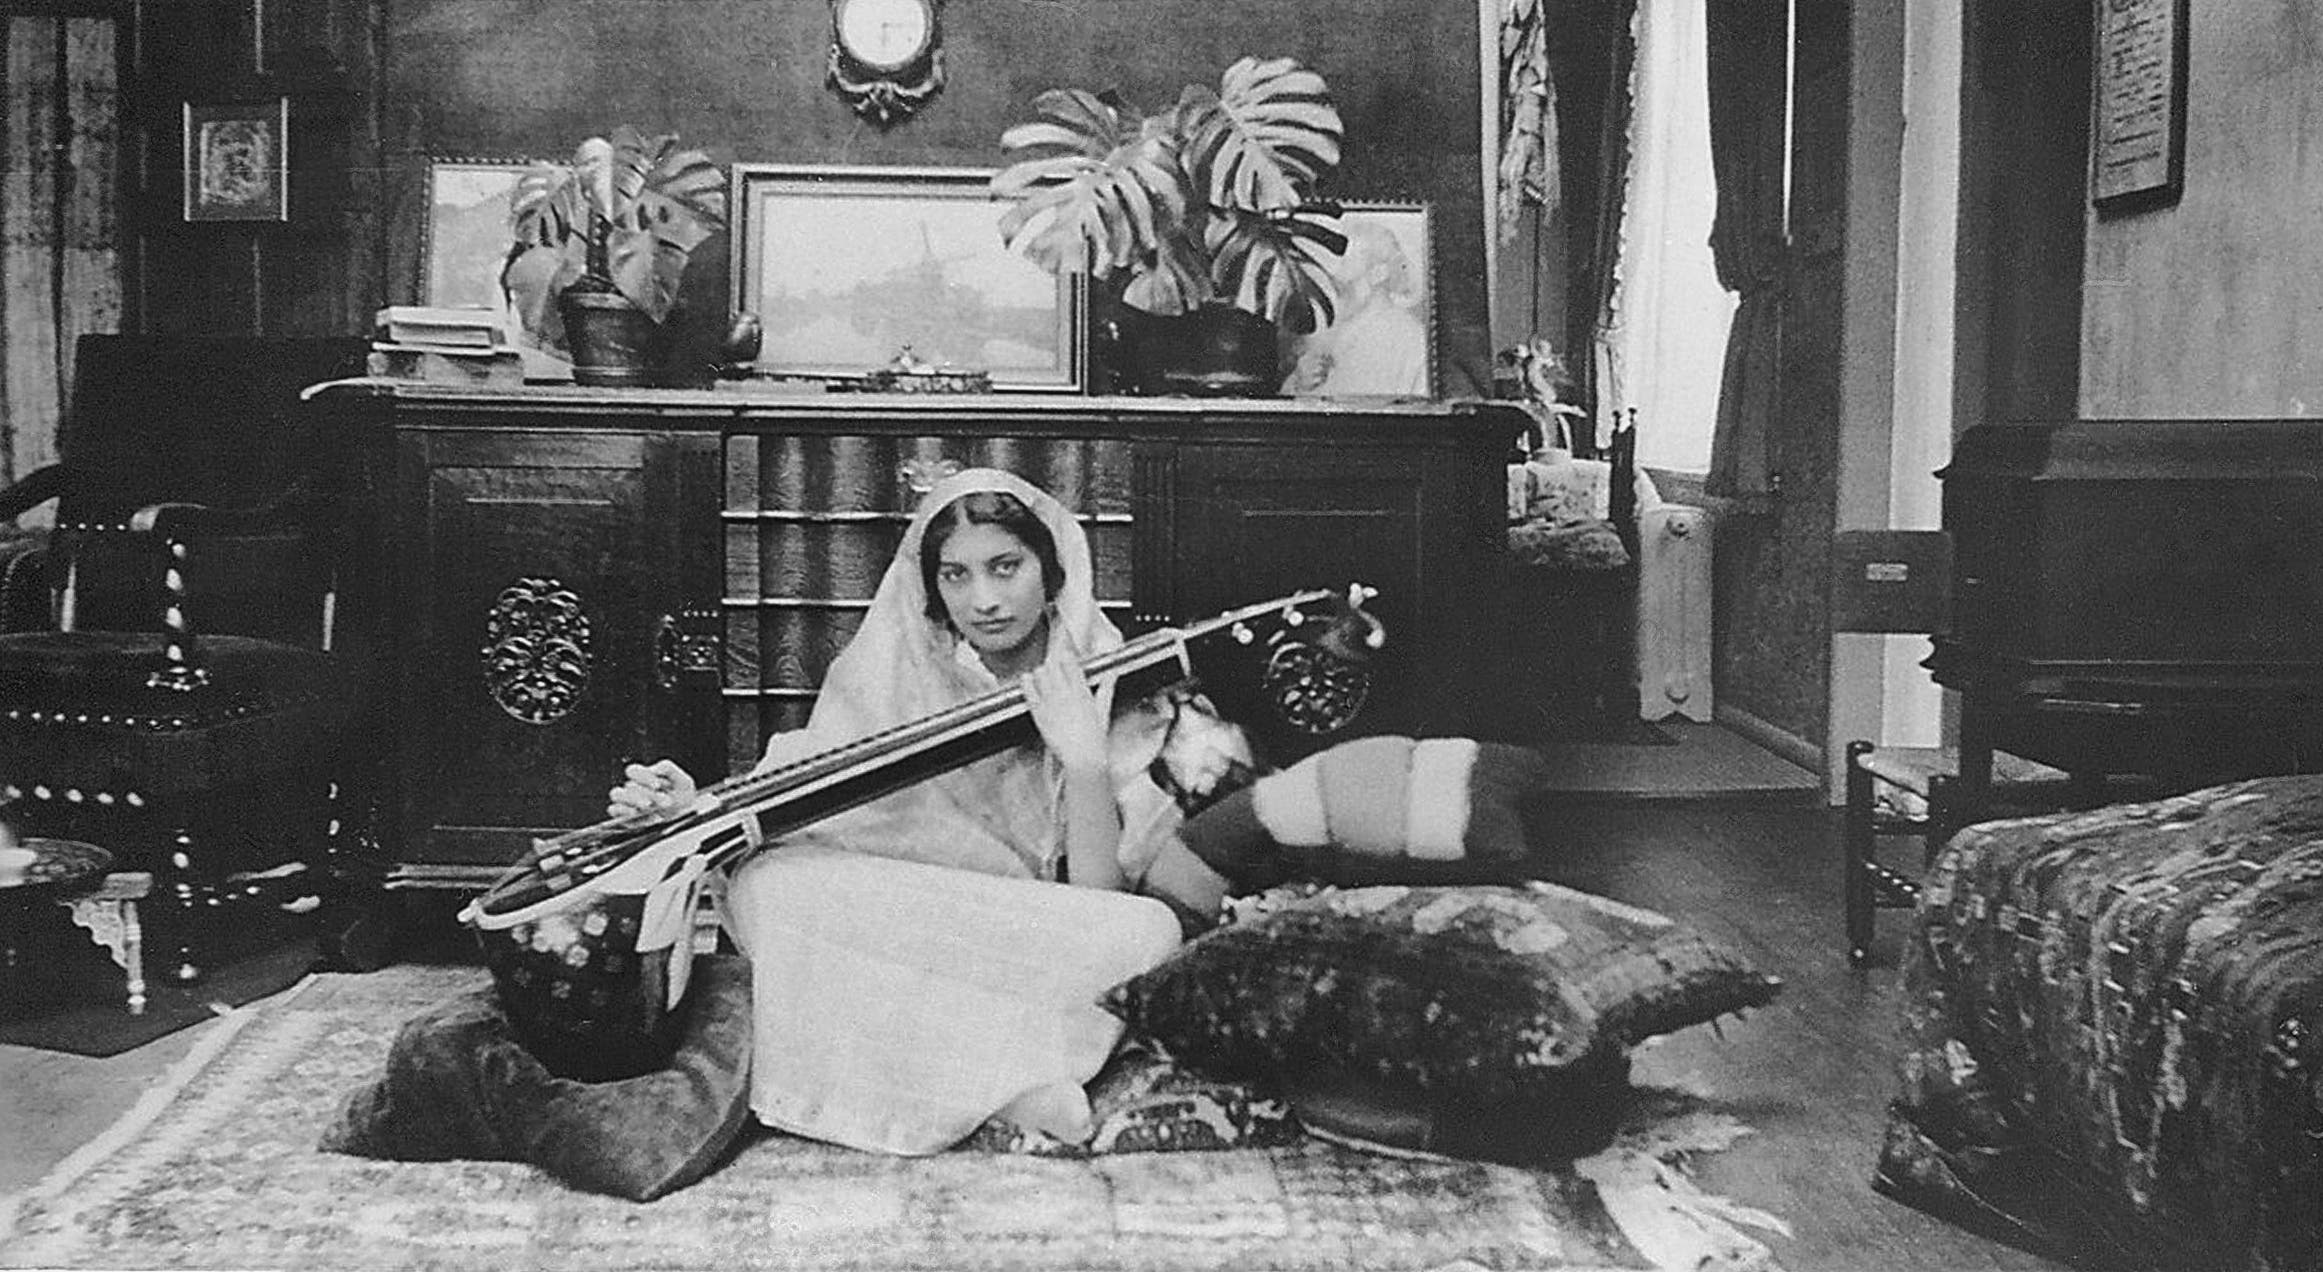 This handout picture received from Shrabani Basu at the Noor Inayat Khan Memorial trust on November 8, 2012 shows Noor Inayat Khan playing a Veena. (AFP)